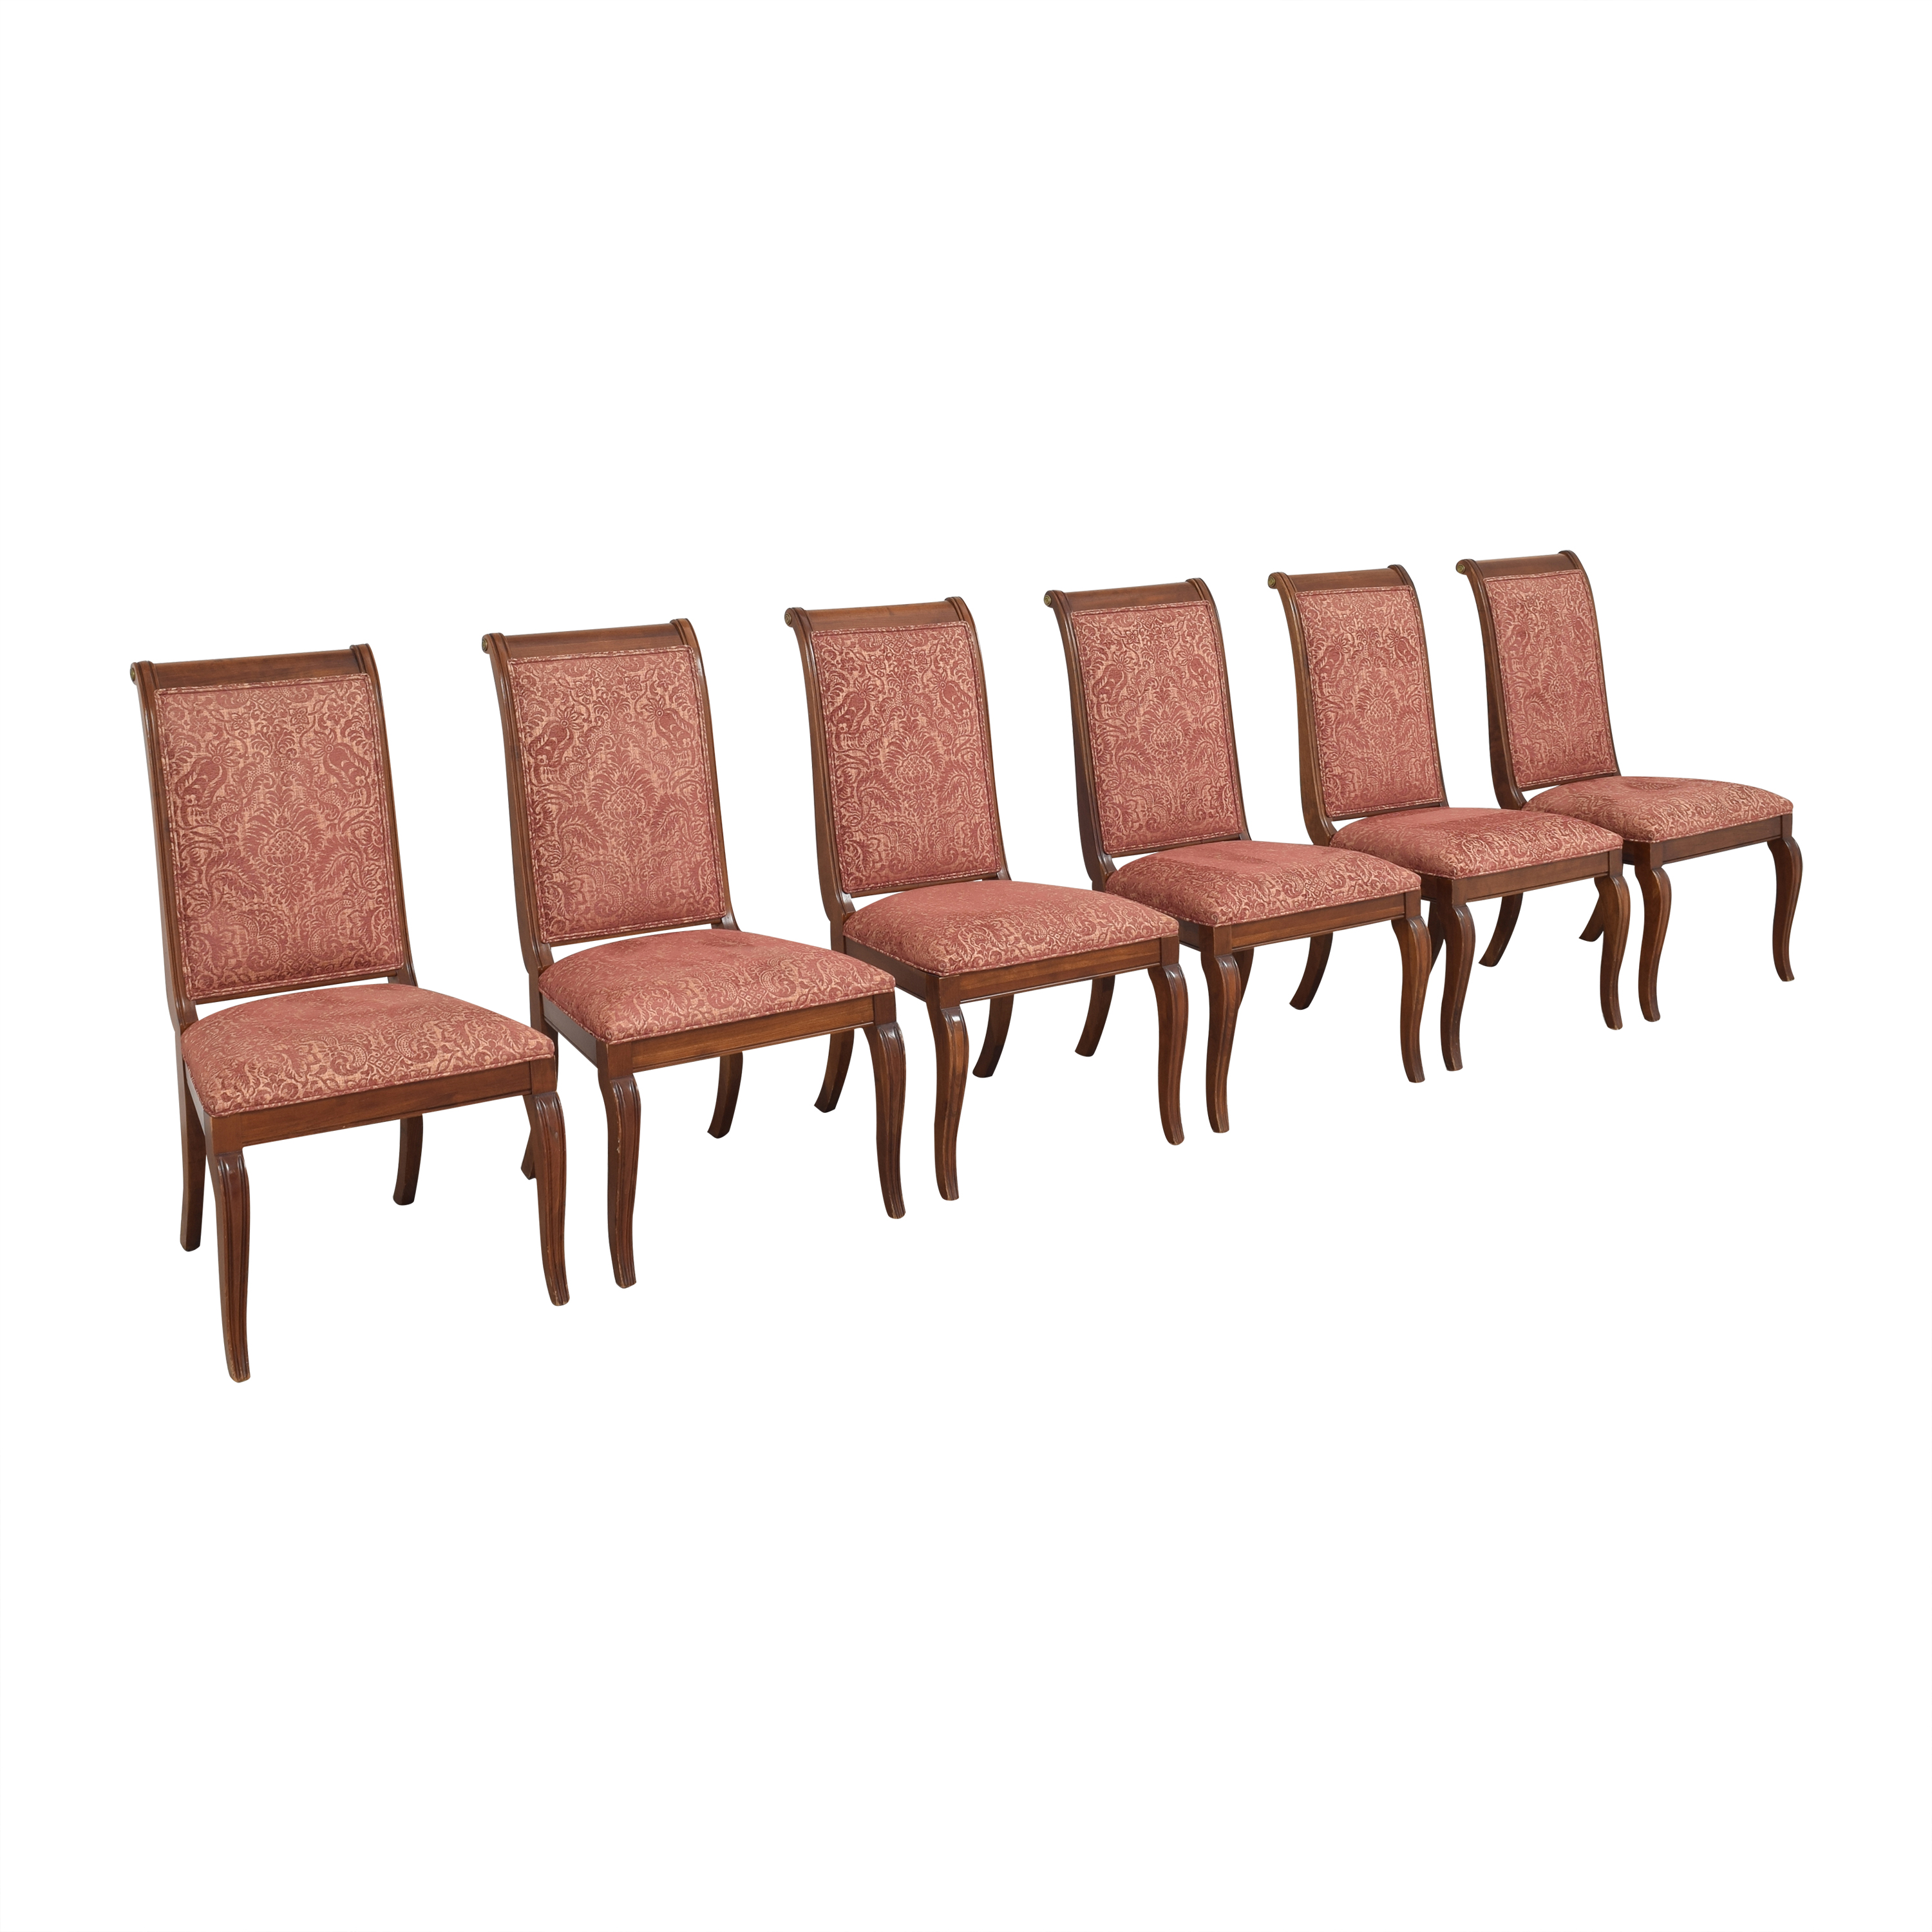 Ethan Allen Ethan Allen Upholstered Dining Side Chairs pink/red and brown